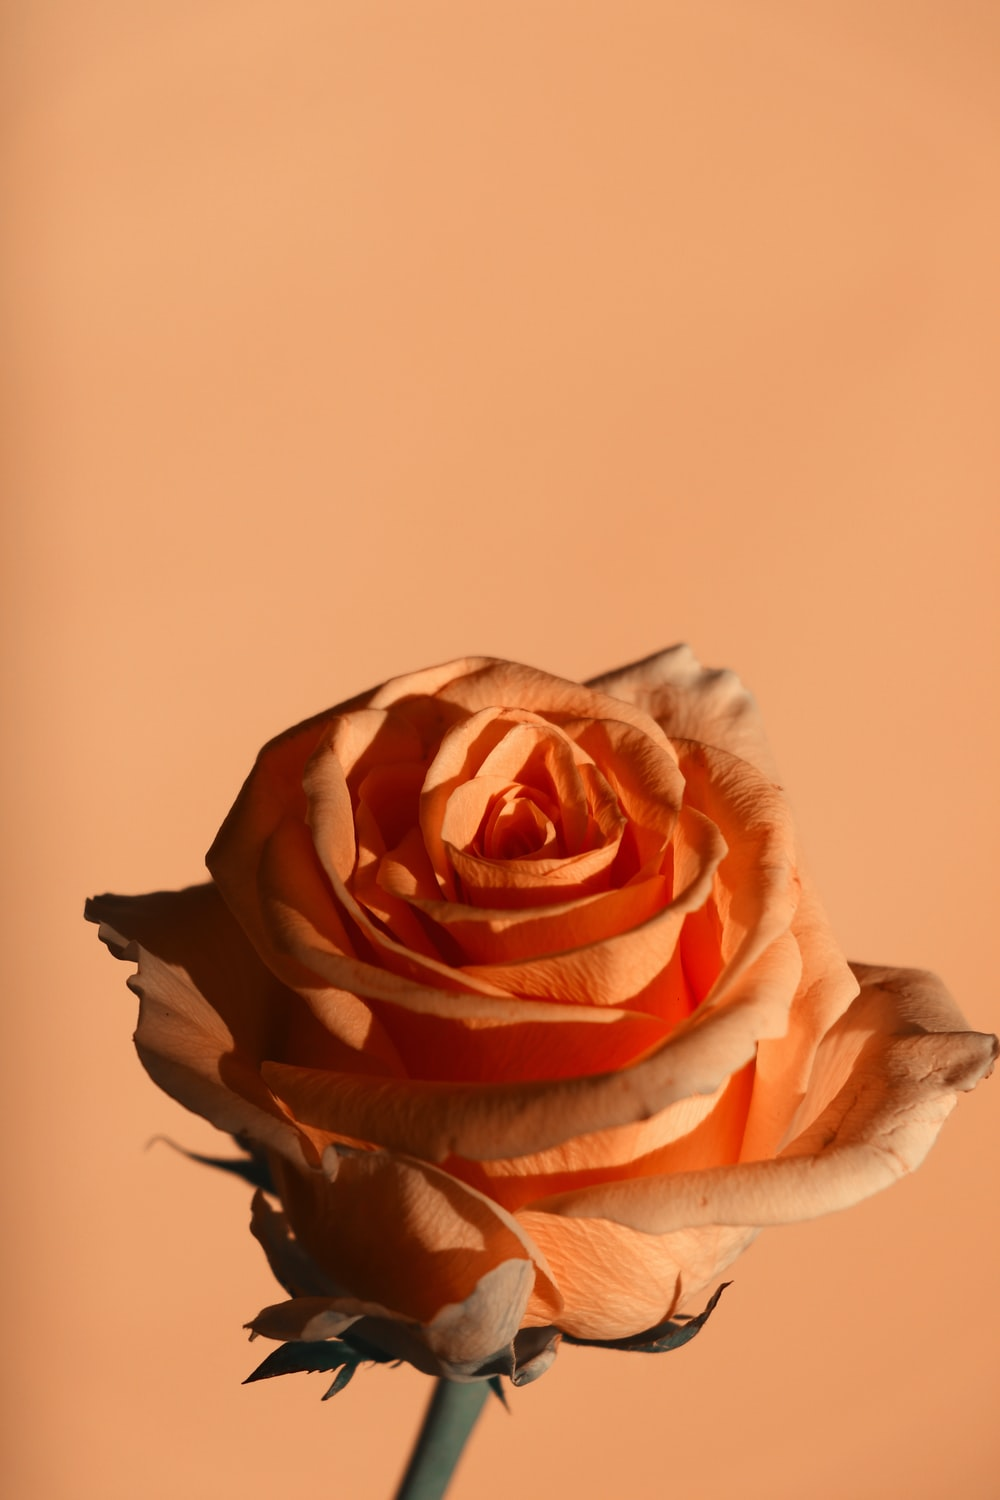 pink and white rose in close up photography